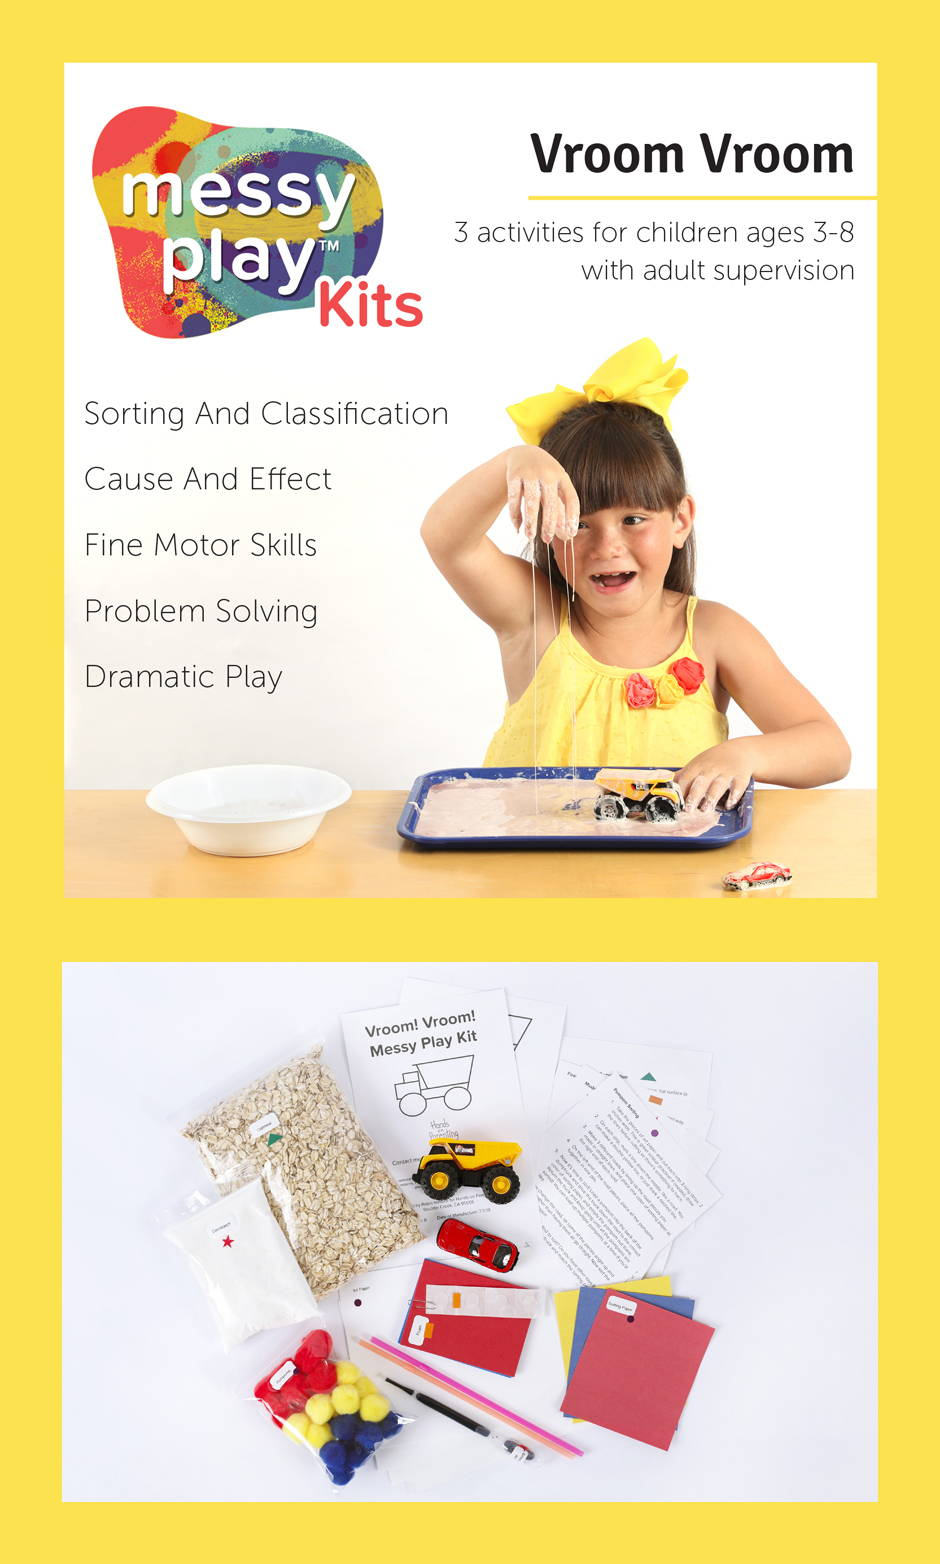 Vroom Vroom Messy Play Kit contains 4 activities that teach Sorting and classification, cause and effect, fine motor skills, problem solving, and dramatic play.